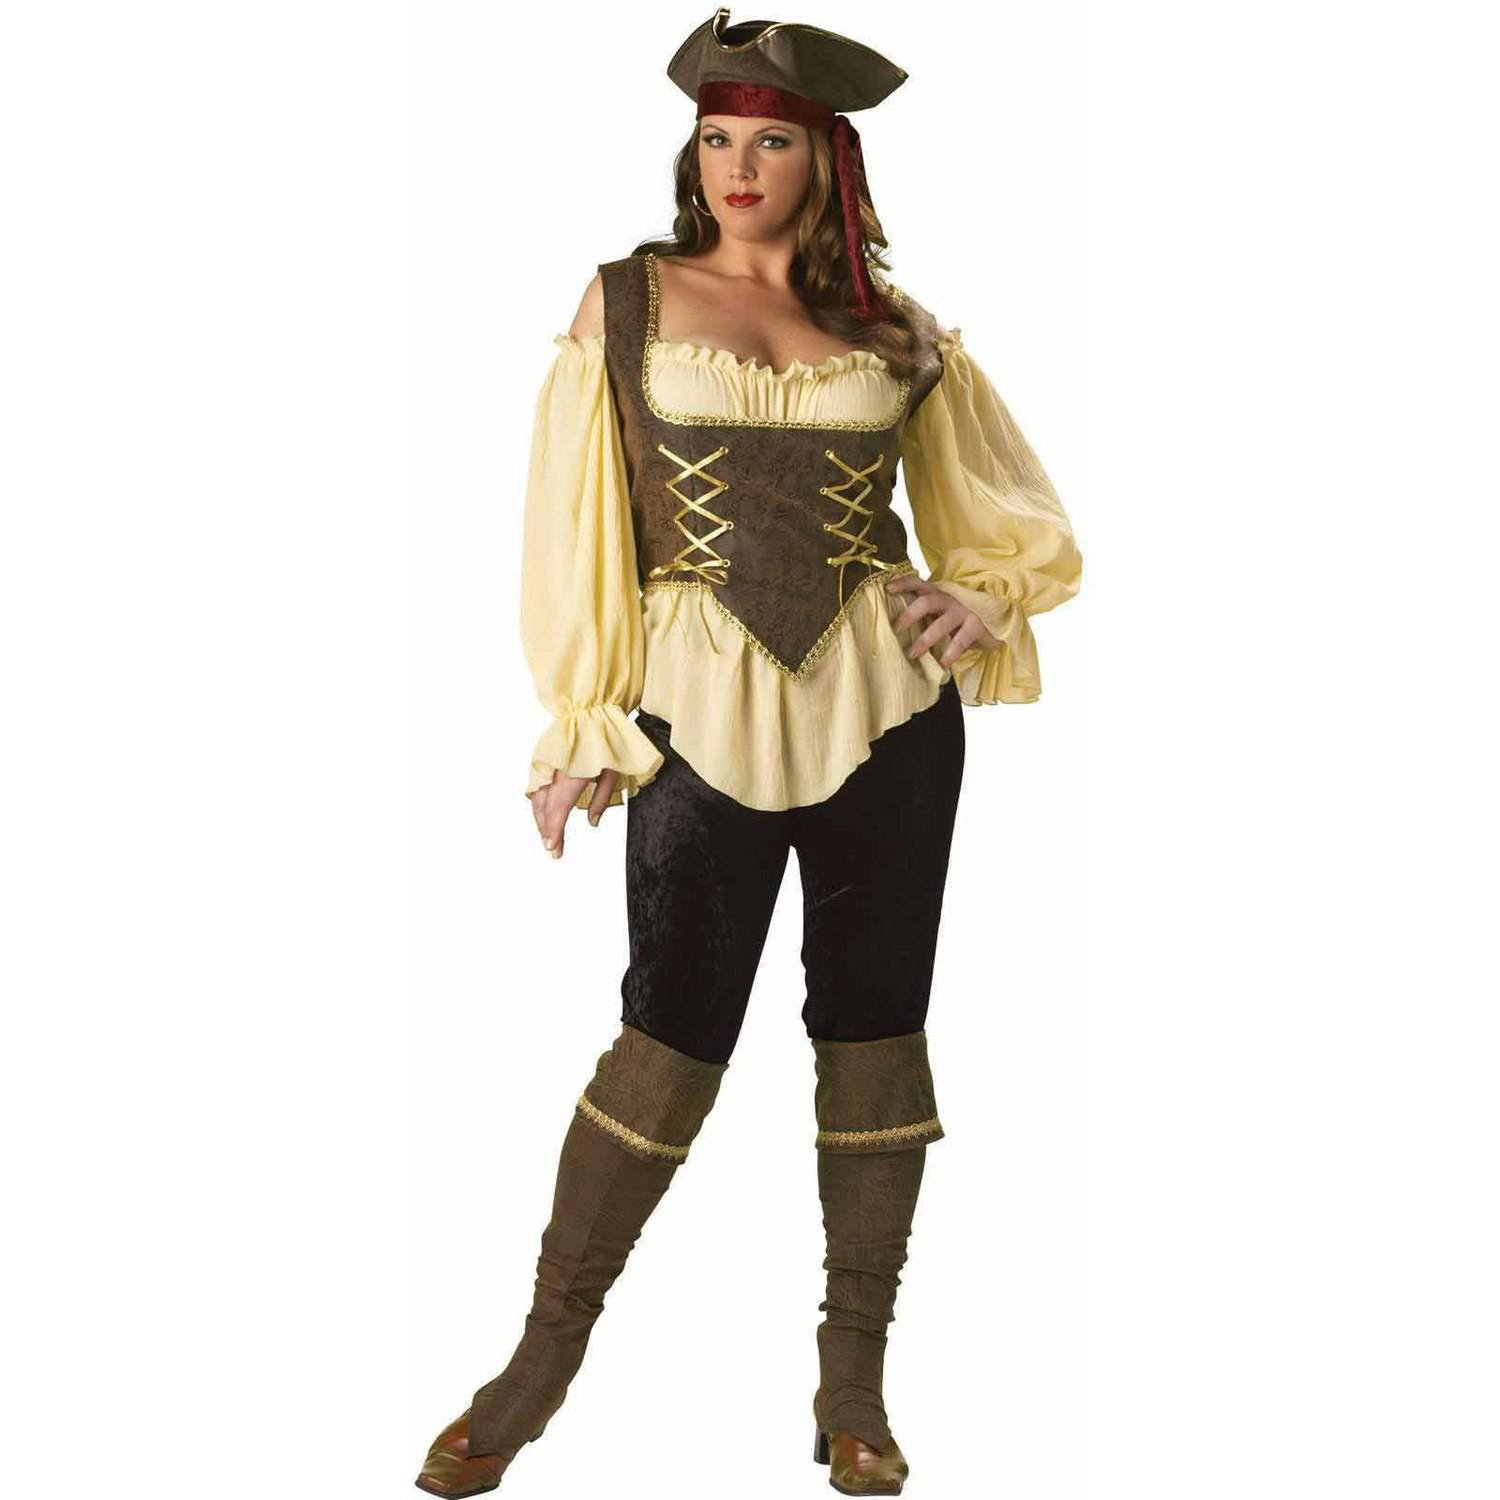 rustic pirate lady elite collection plus size women's adult